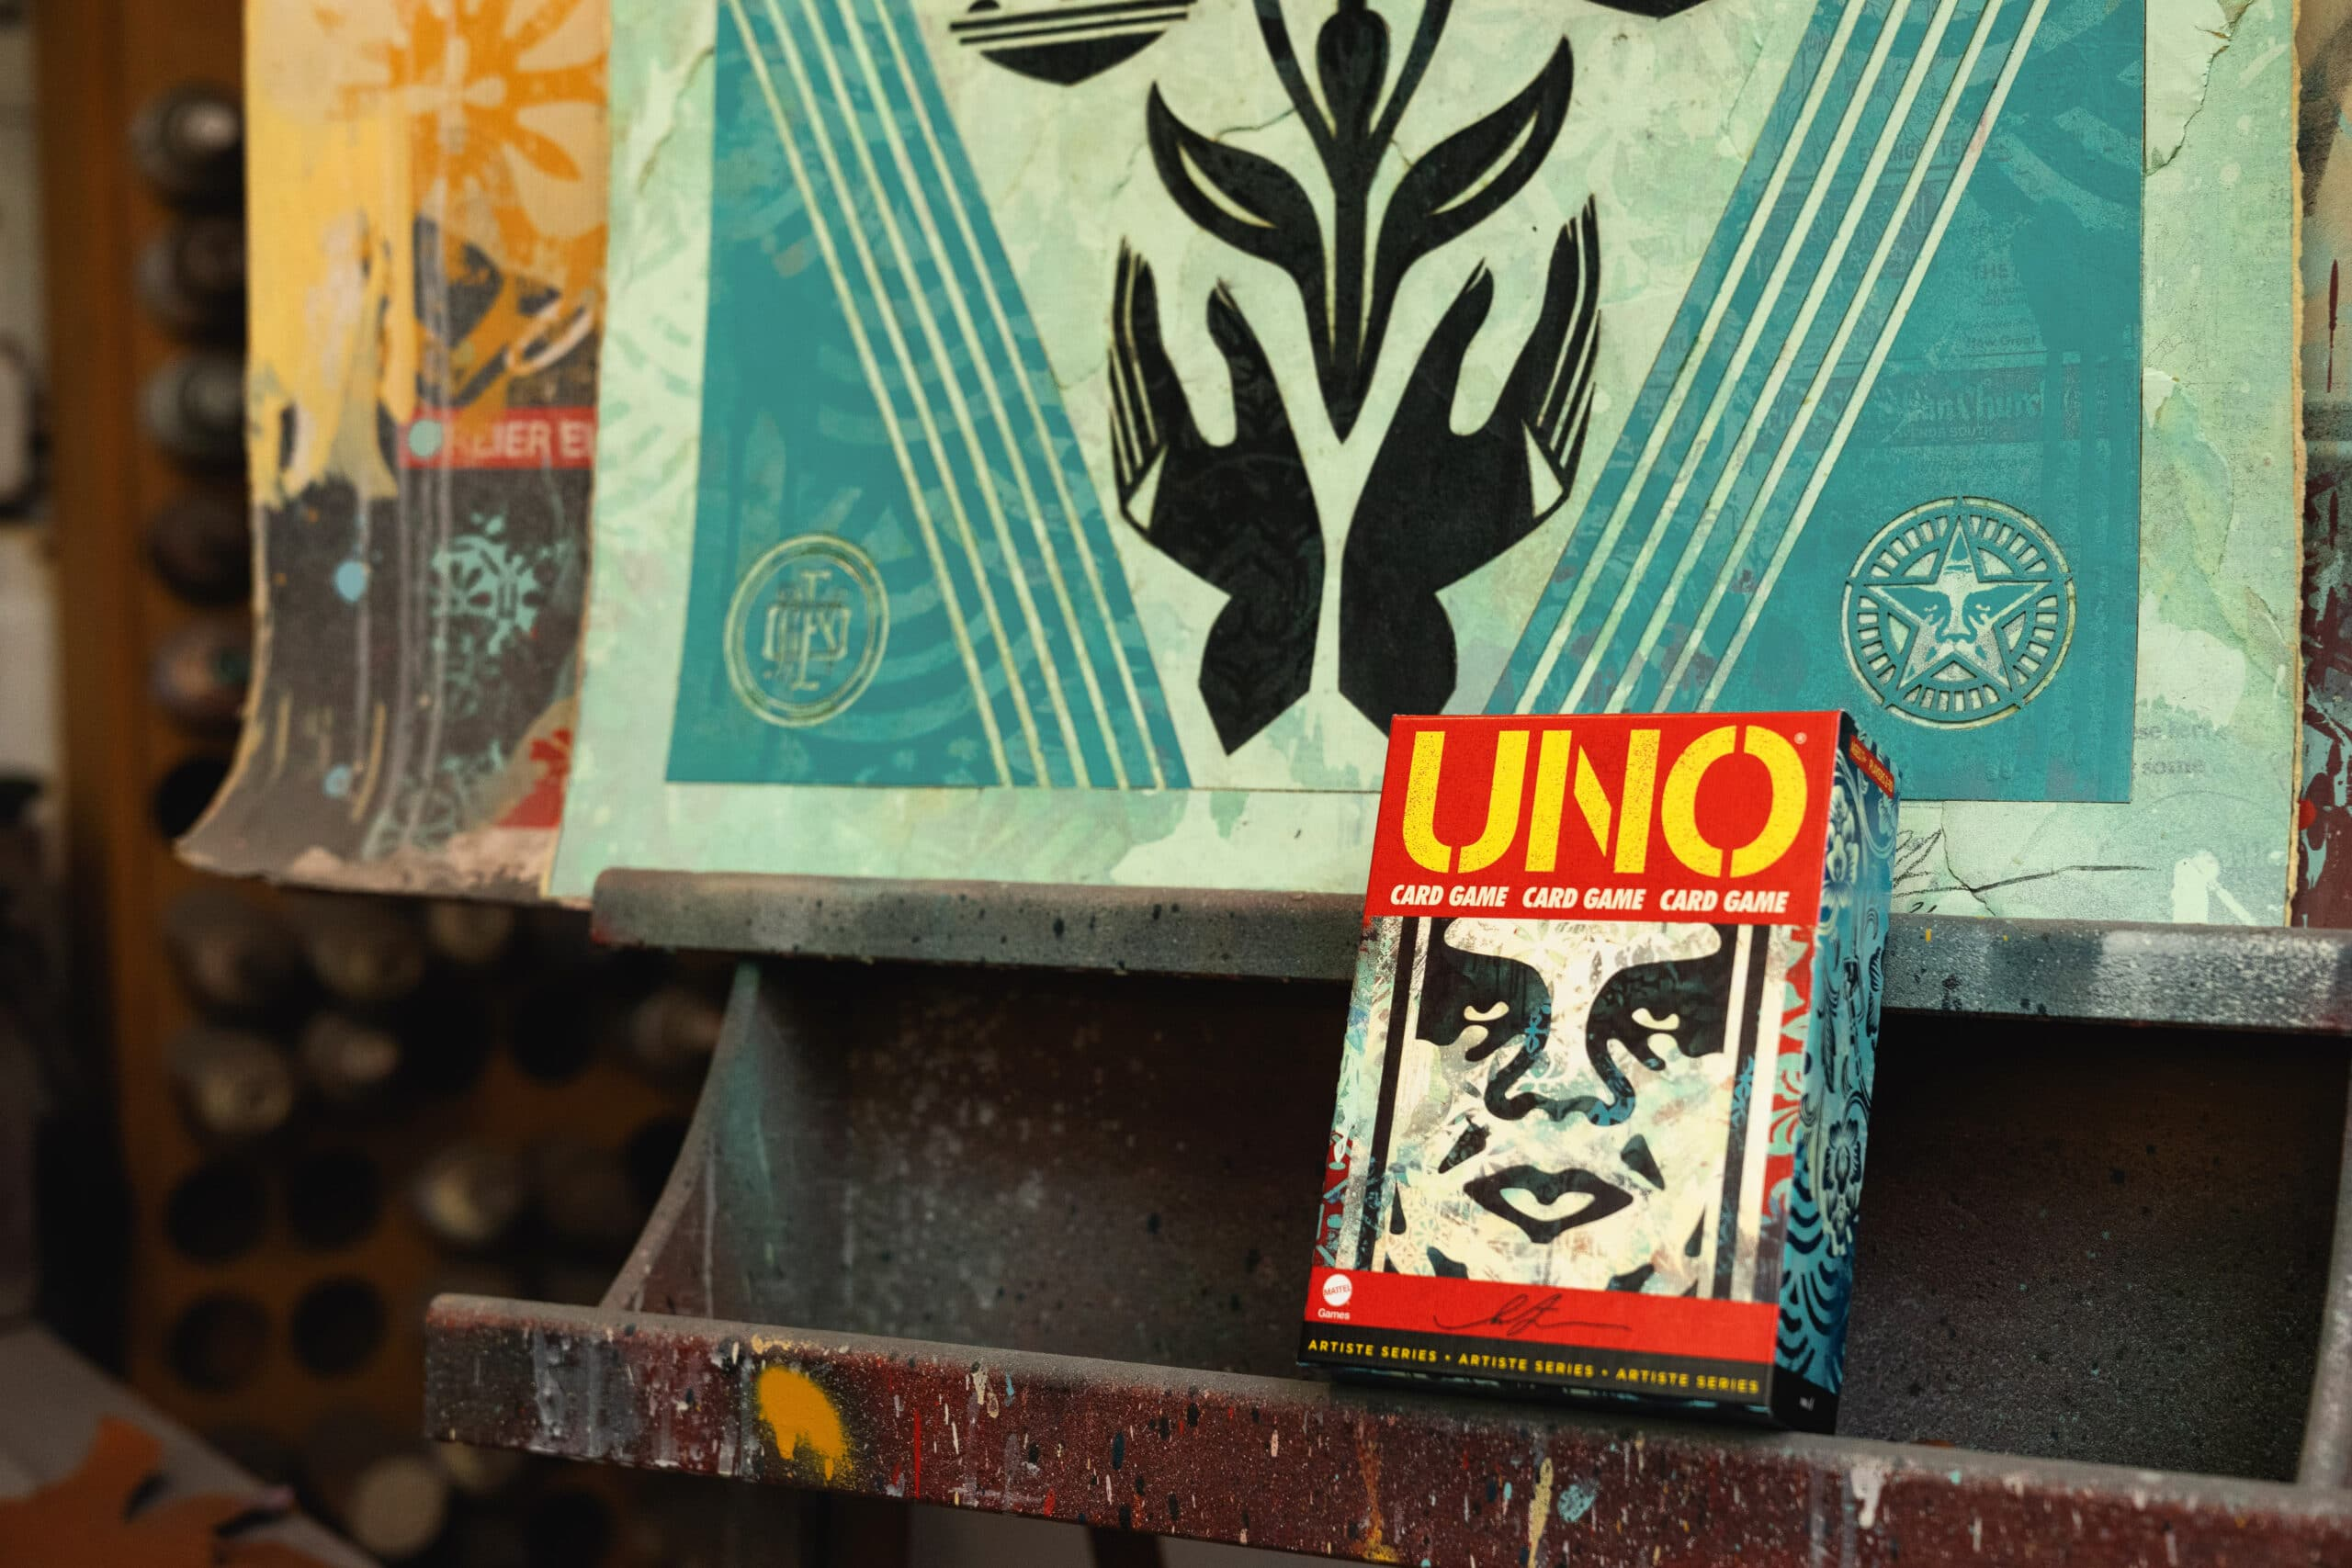 UNO partners with artist Shepard Fairey for a premium deck 20